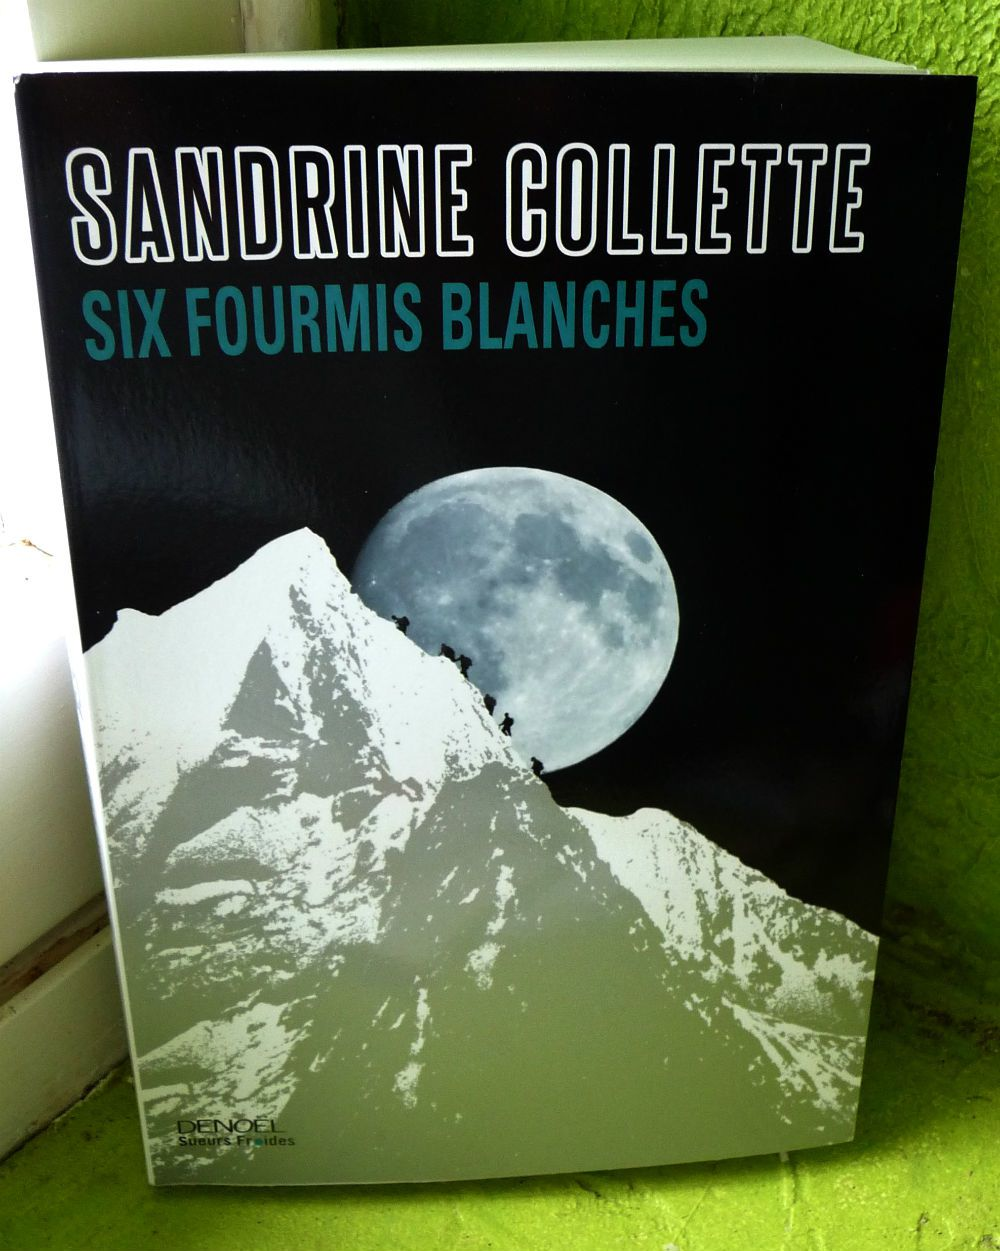 Sandrine Collette- Six fourmis blanches